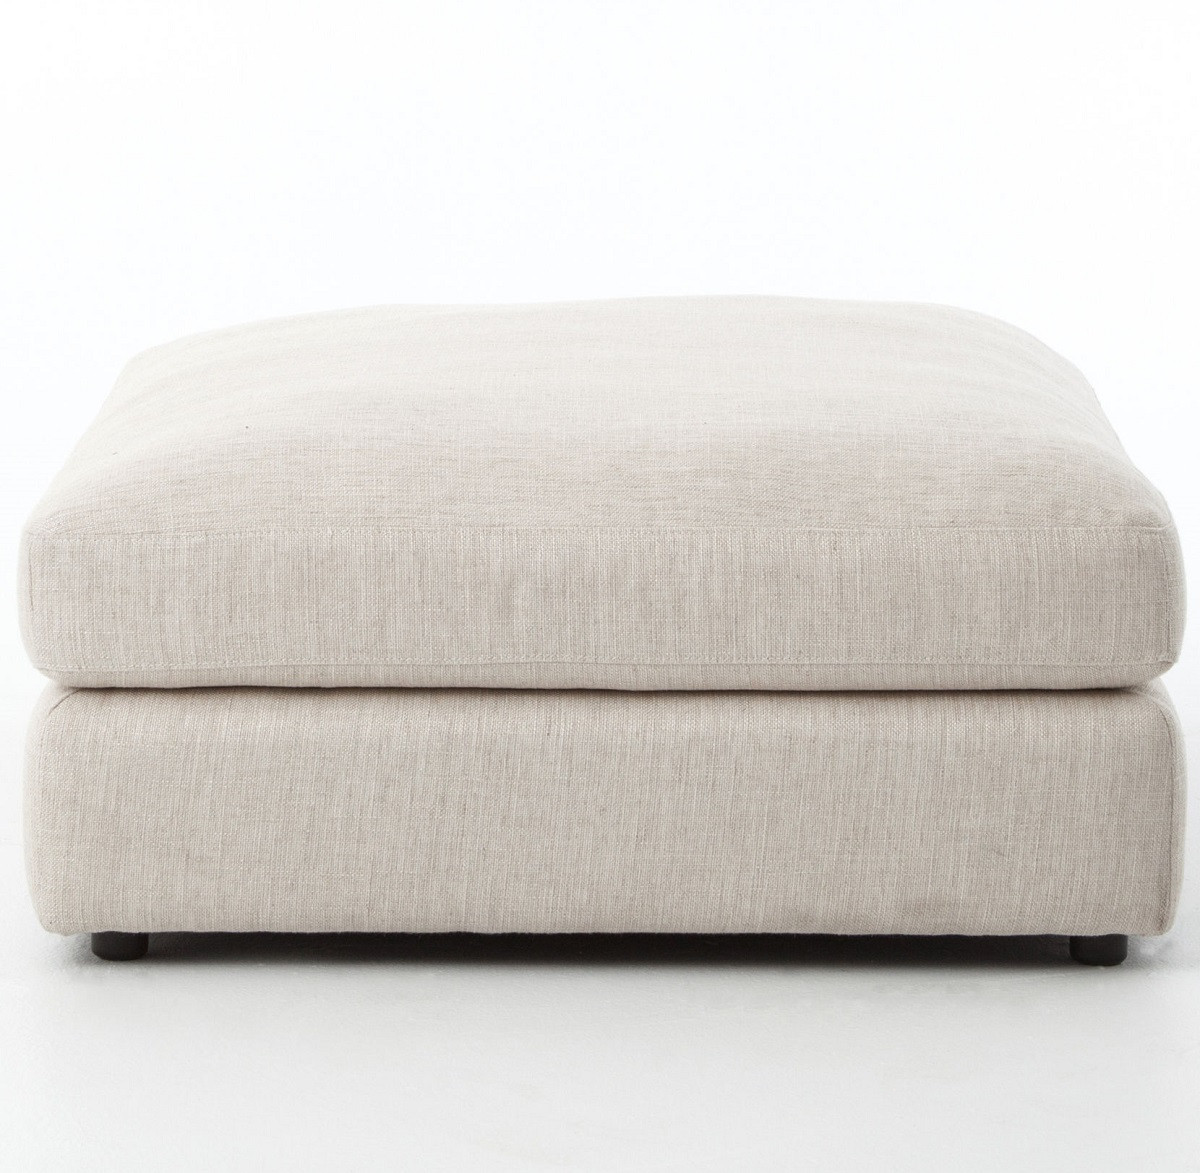 Bloor Contemporary Beige Upholstered Ottoman